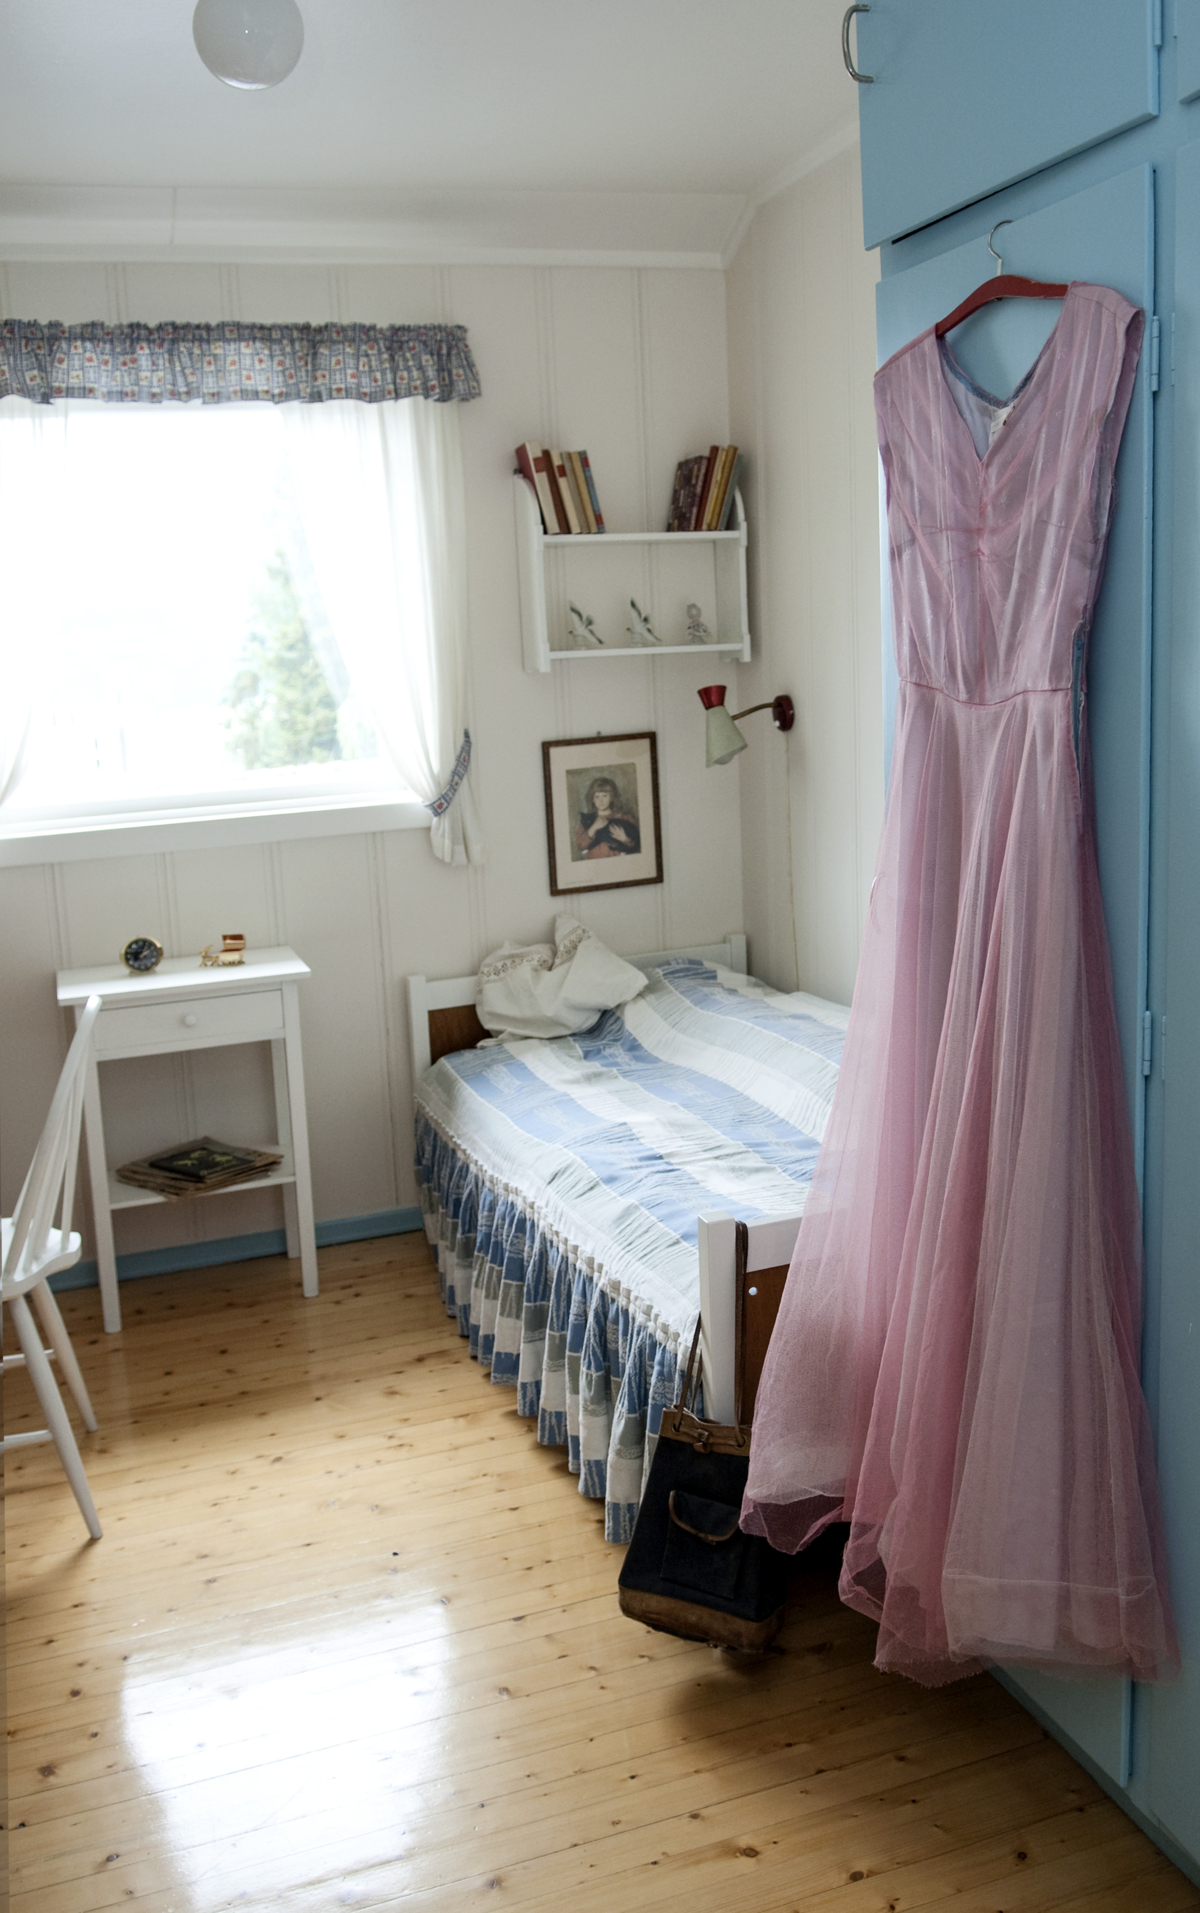 Bedroom painted in white and blue.